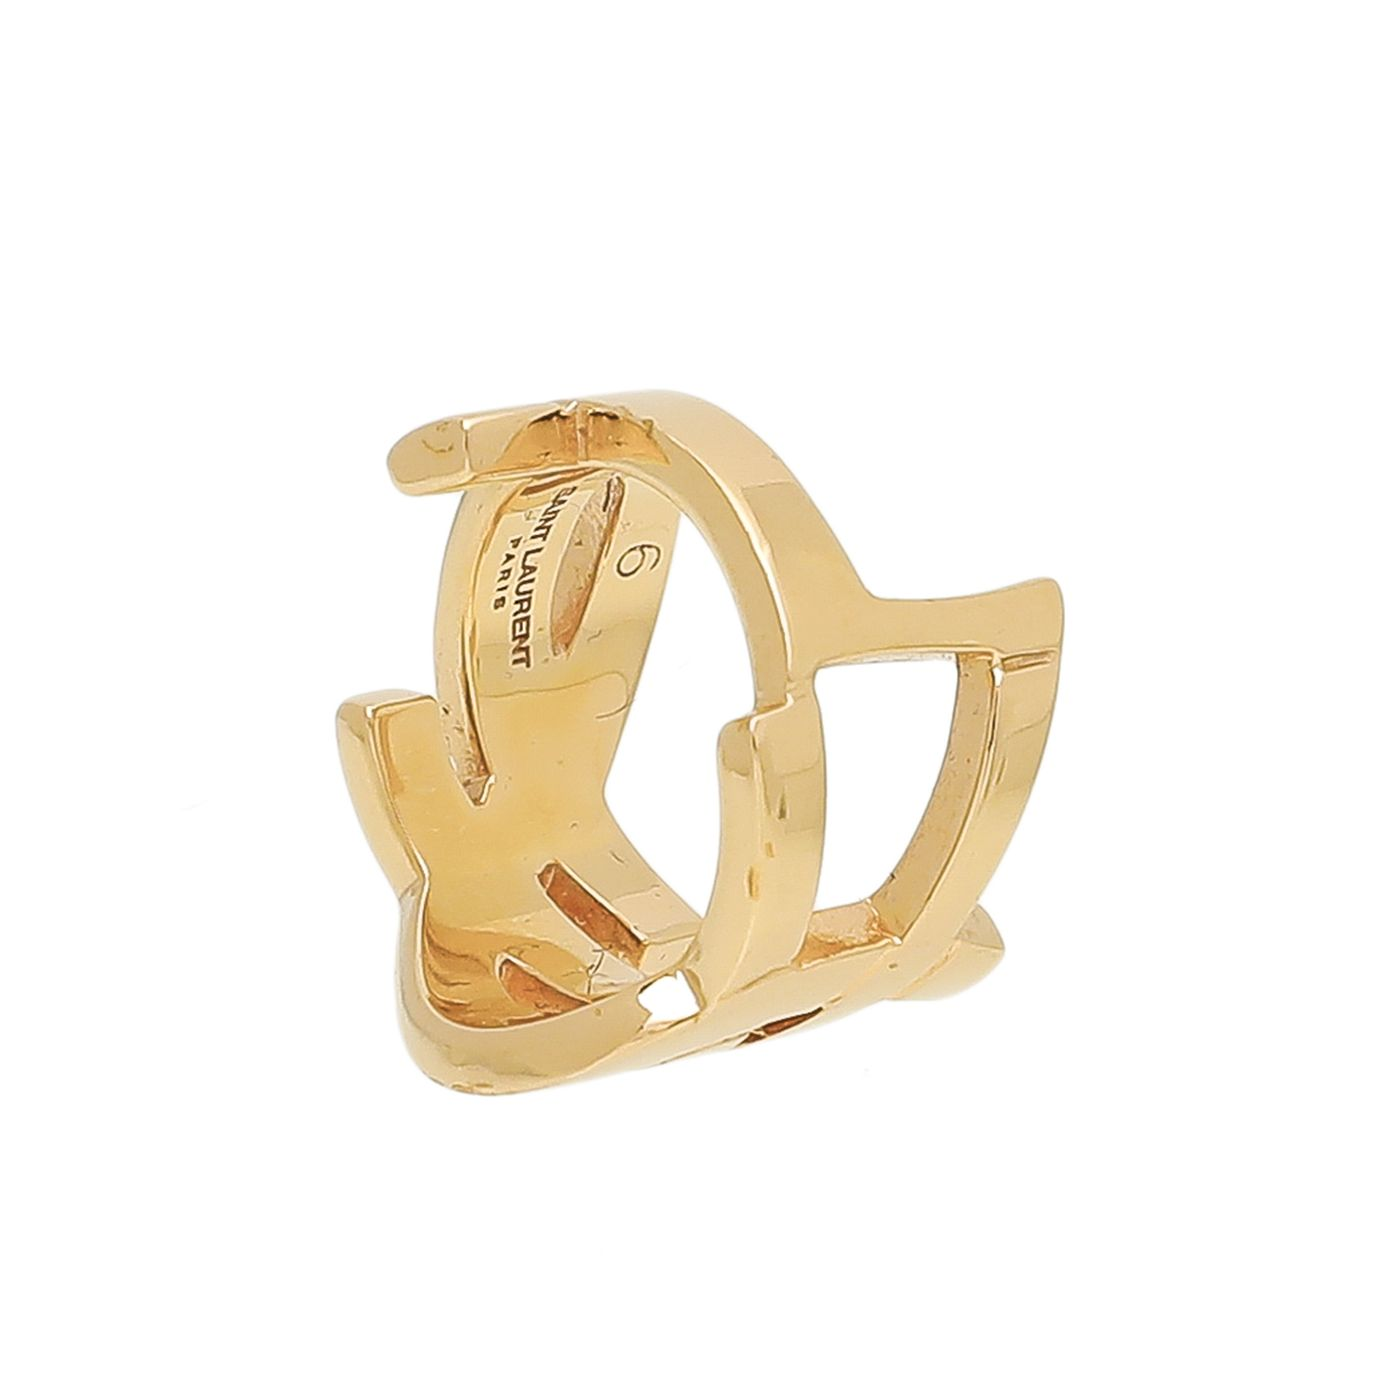 YSL Gold Plated Logo Ring 6